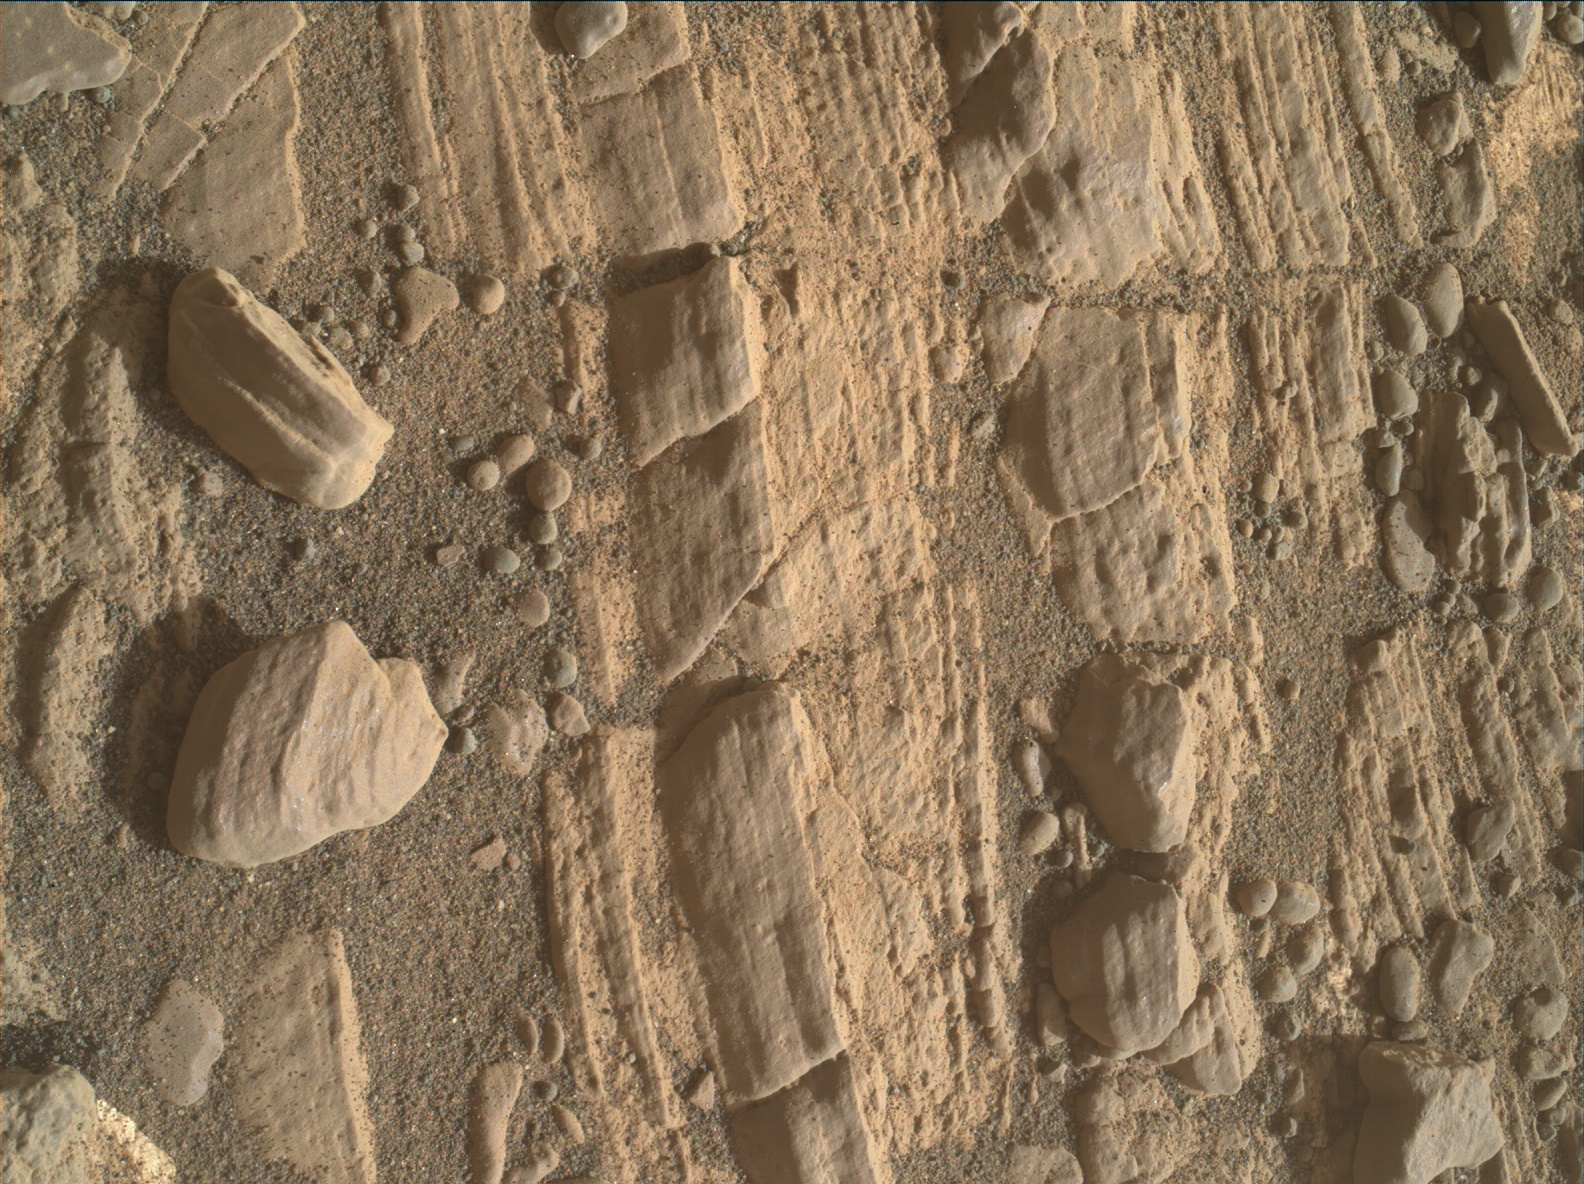 Nasa's Mars rover Curiosity acquired this image using its Mars Hand Lens Imager (MAHLI) on Sol 2426